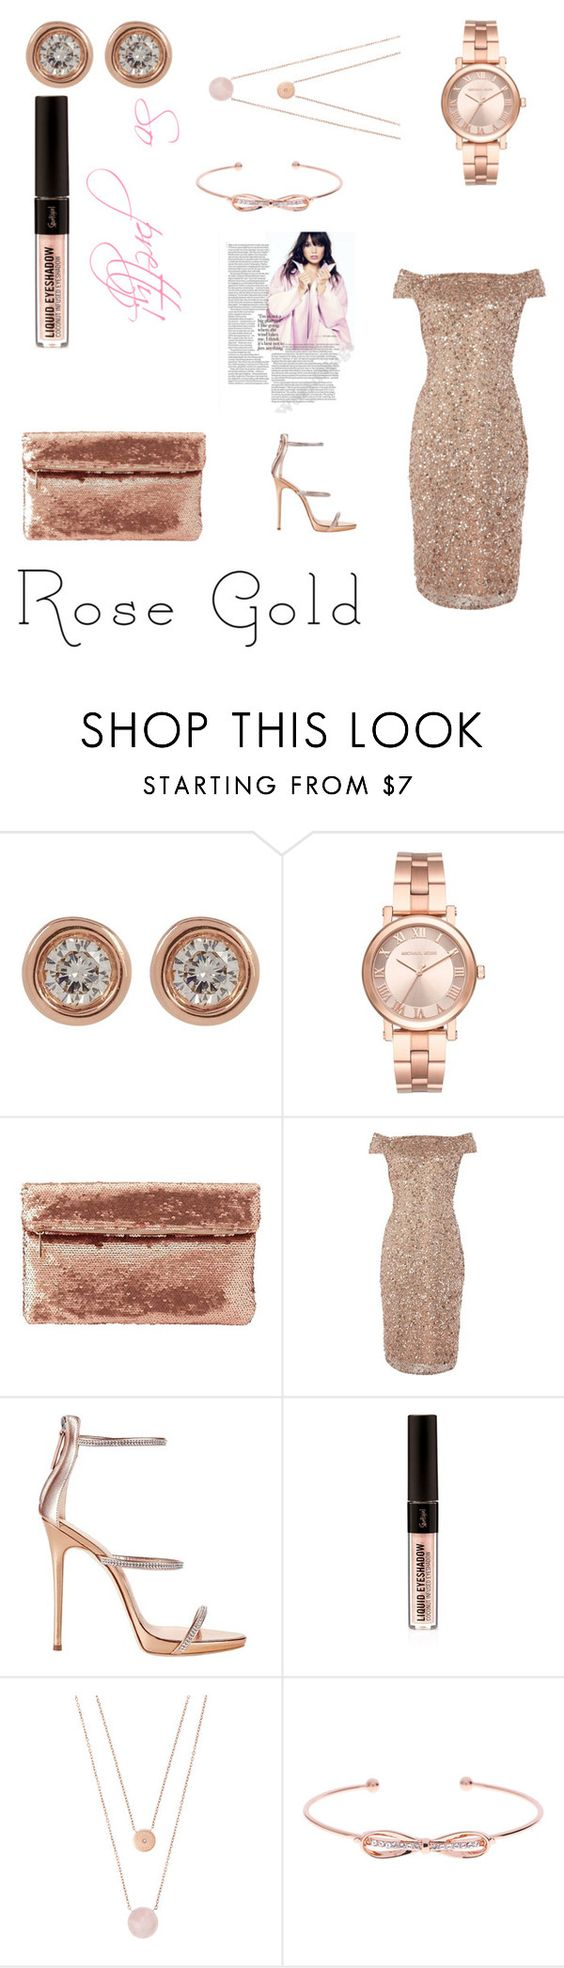 """""""Rose Gold #3"""" by rowanberry554 ❤ liked on Polyvore featuring Ron Hami, Michael Kors, Charlotte Russe, Adrianna Papell, Giuseppe Zanotti and Ted Baker"""